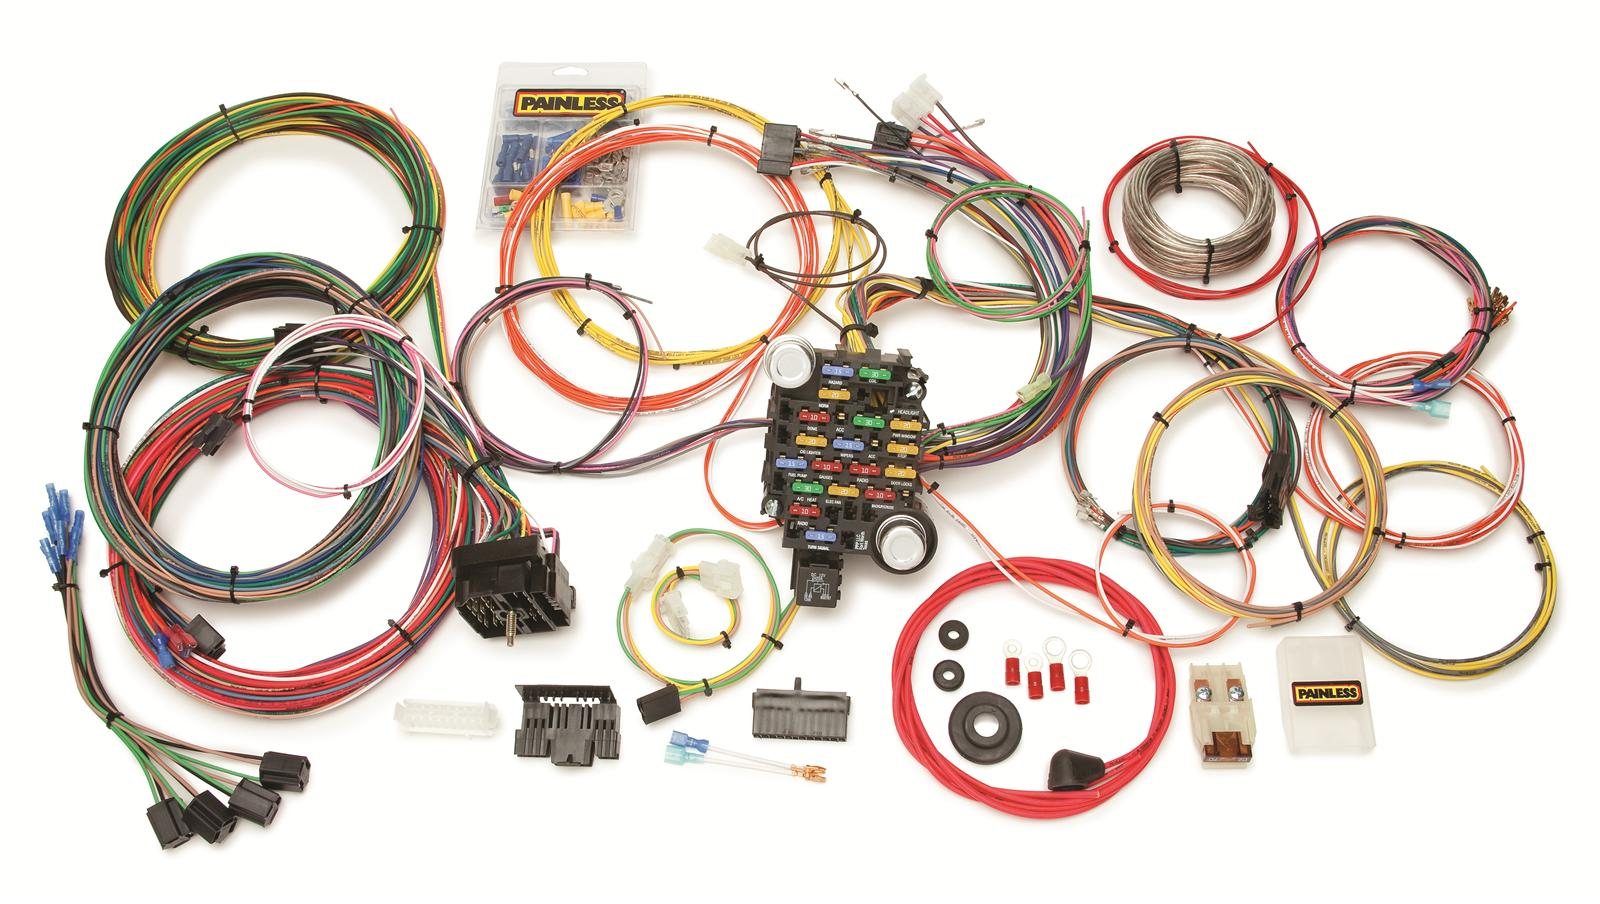 painless wiring 4 pin connector diagram 10205 harness18 circuit gm ebay